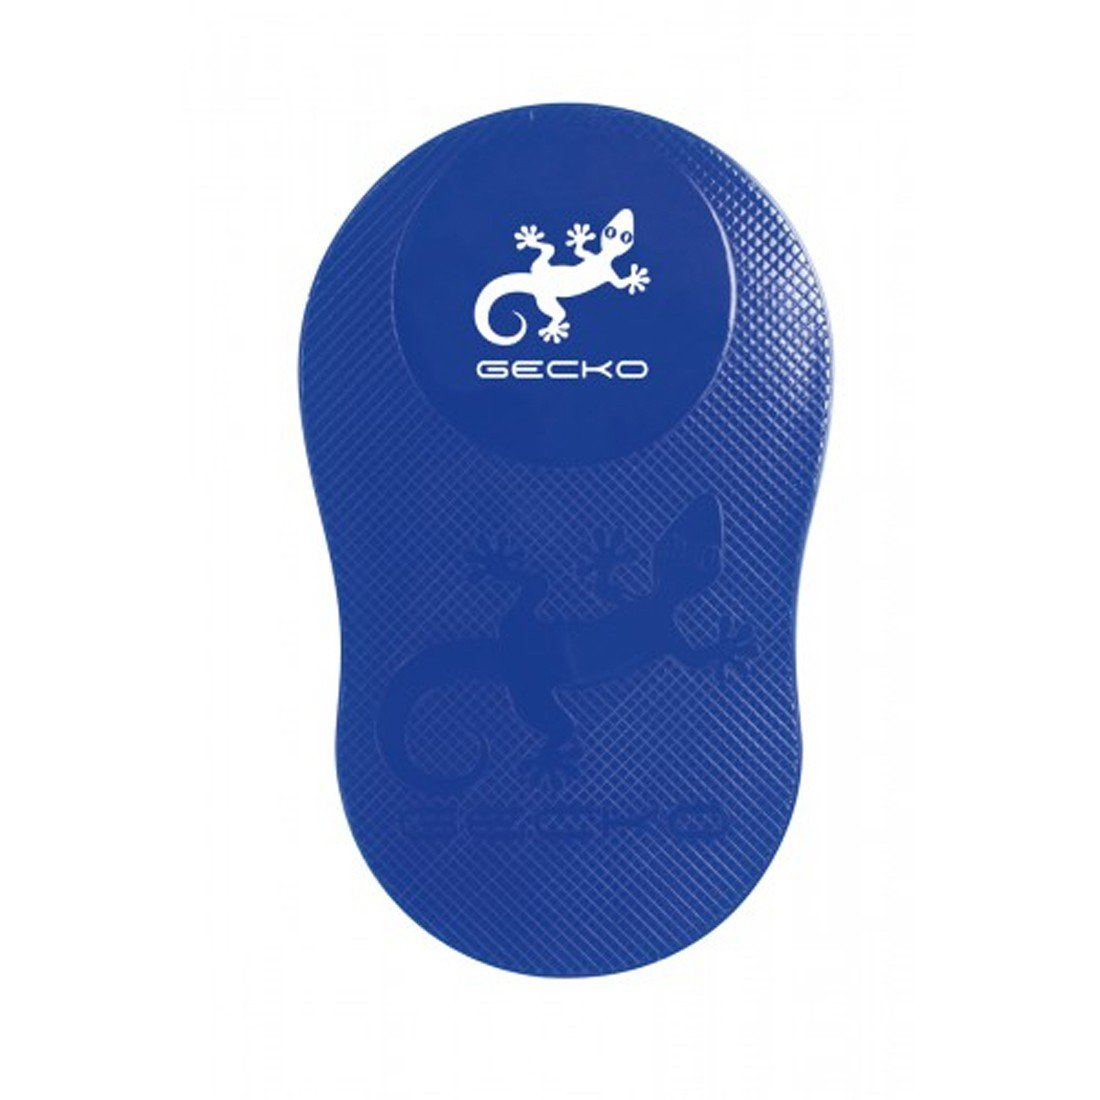 We like the Gecko pad (review here: https://t.co/iNlgQgpzZb) & have a nice blue one to give away. Follow & RT to win https://t.co/xIUR9V1oto